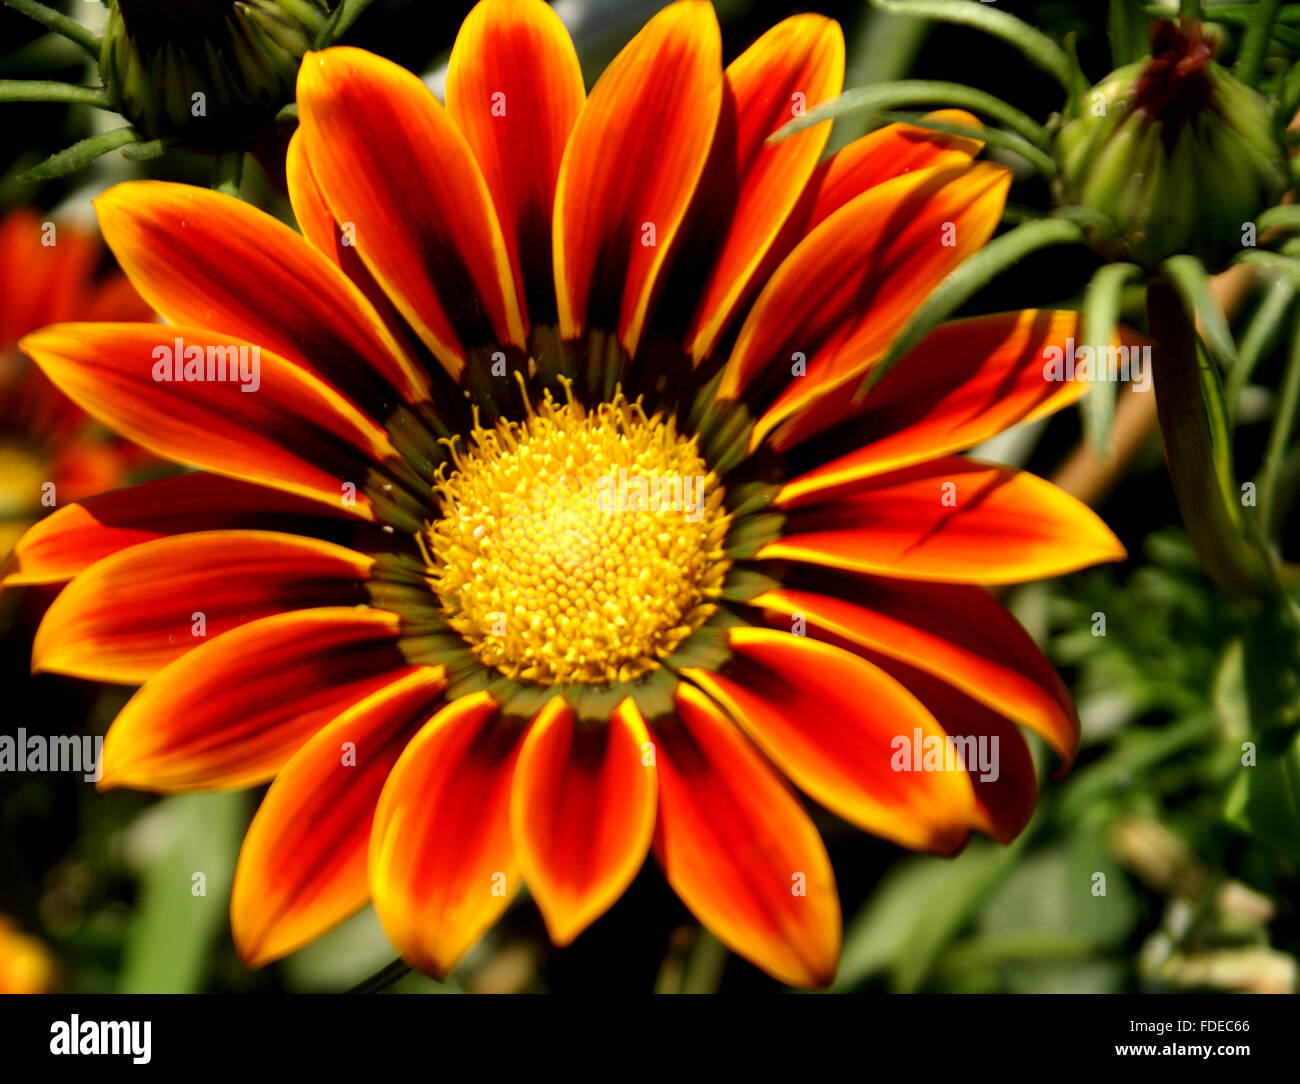 Gazania ringens, Cultivated ornamental herb with silvery hairy leaves in basal rosette and orange red flower head, Stock Photo